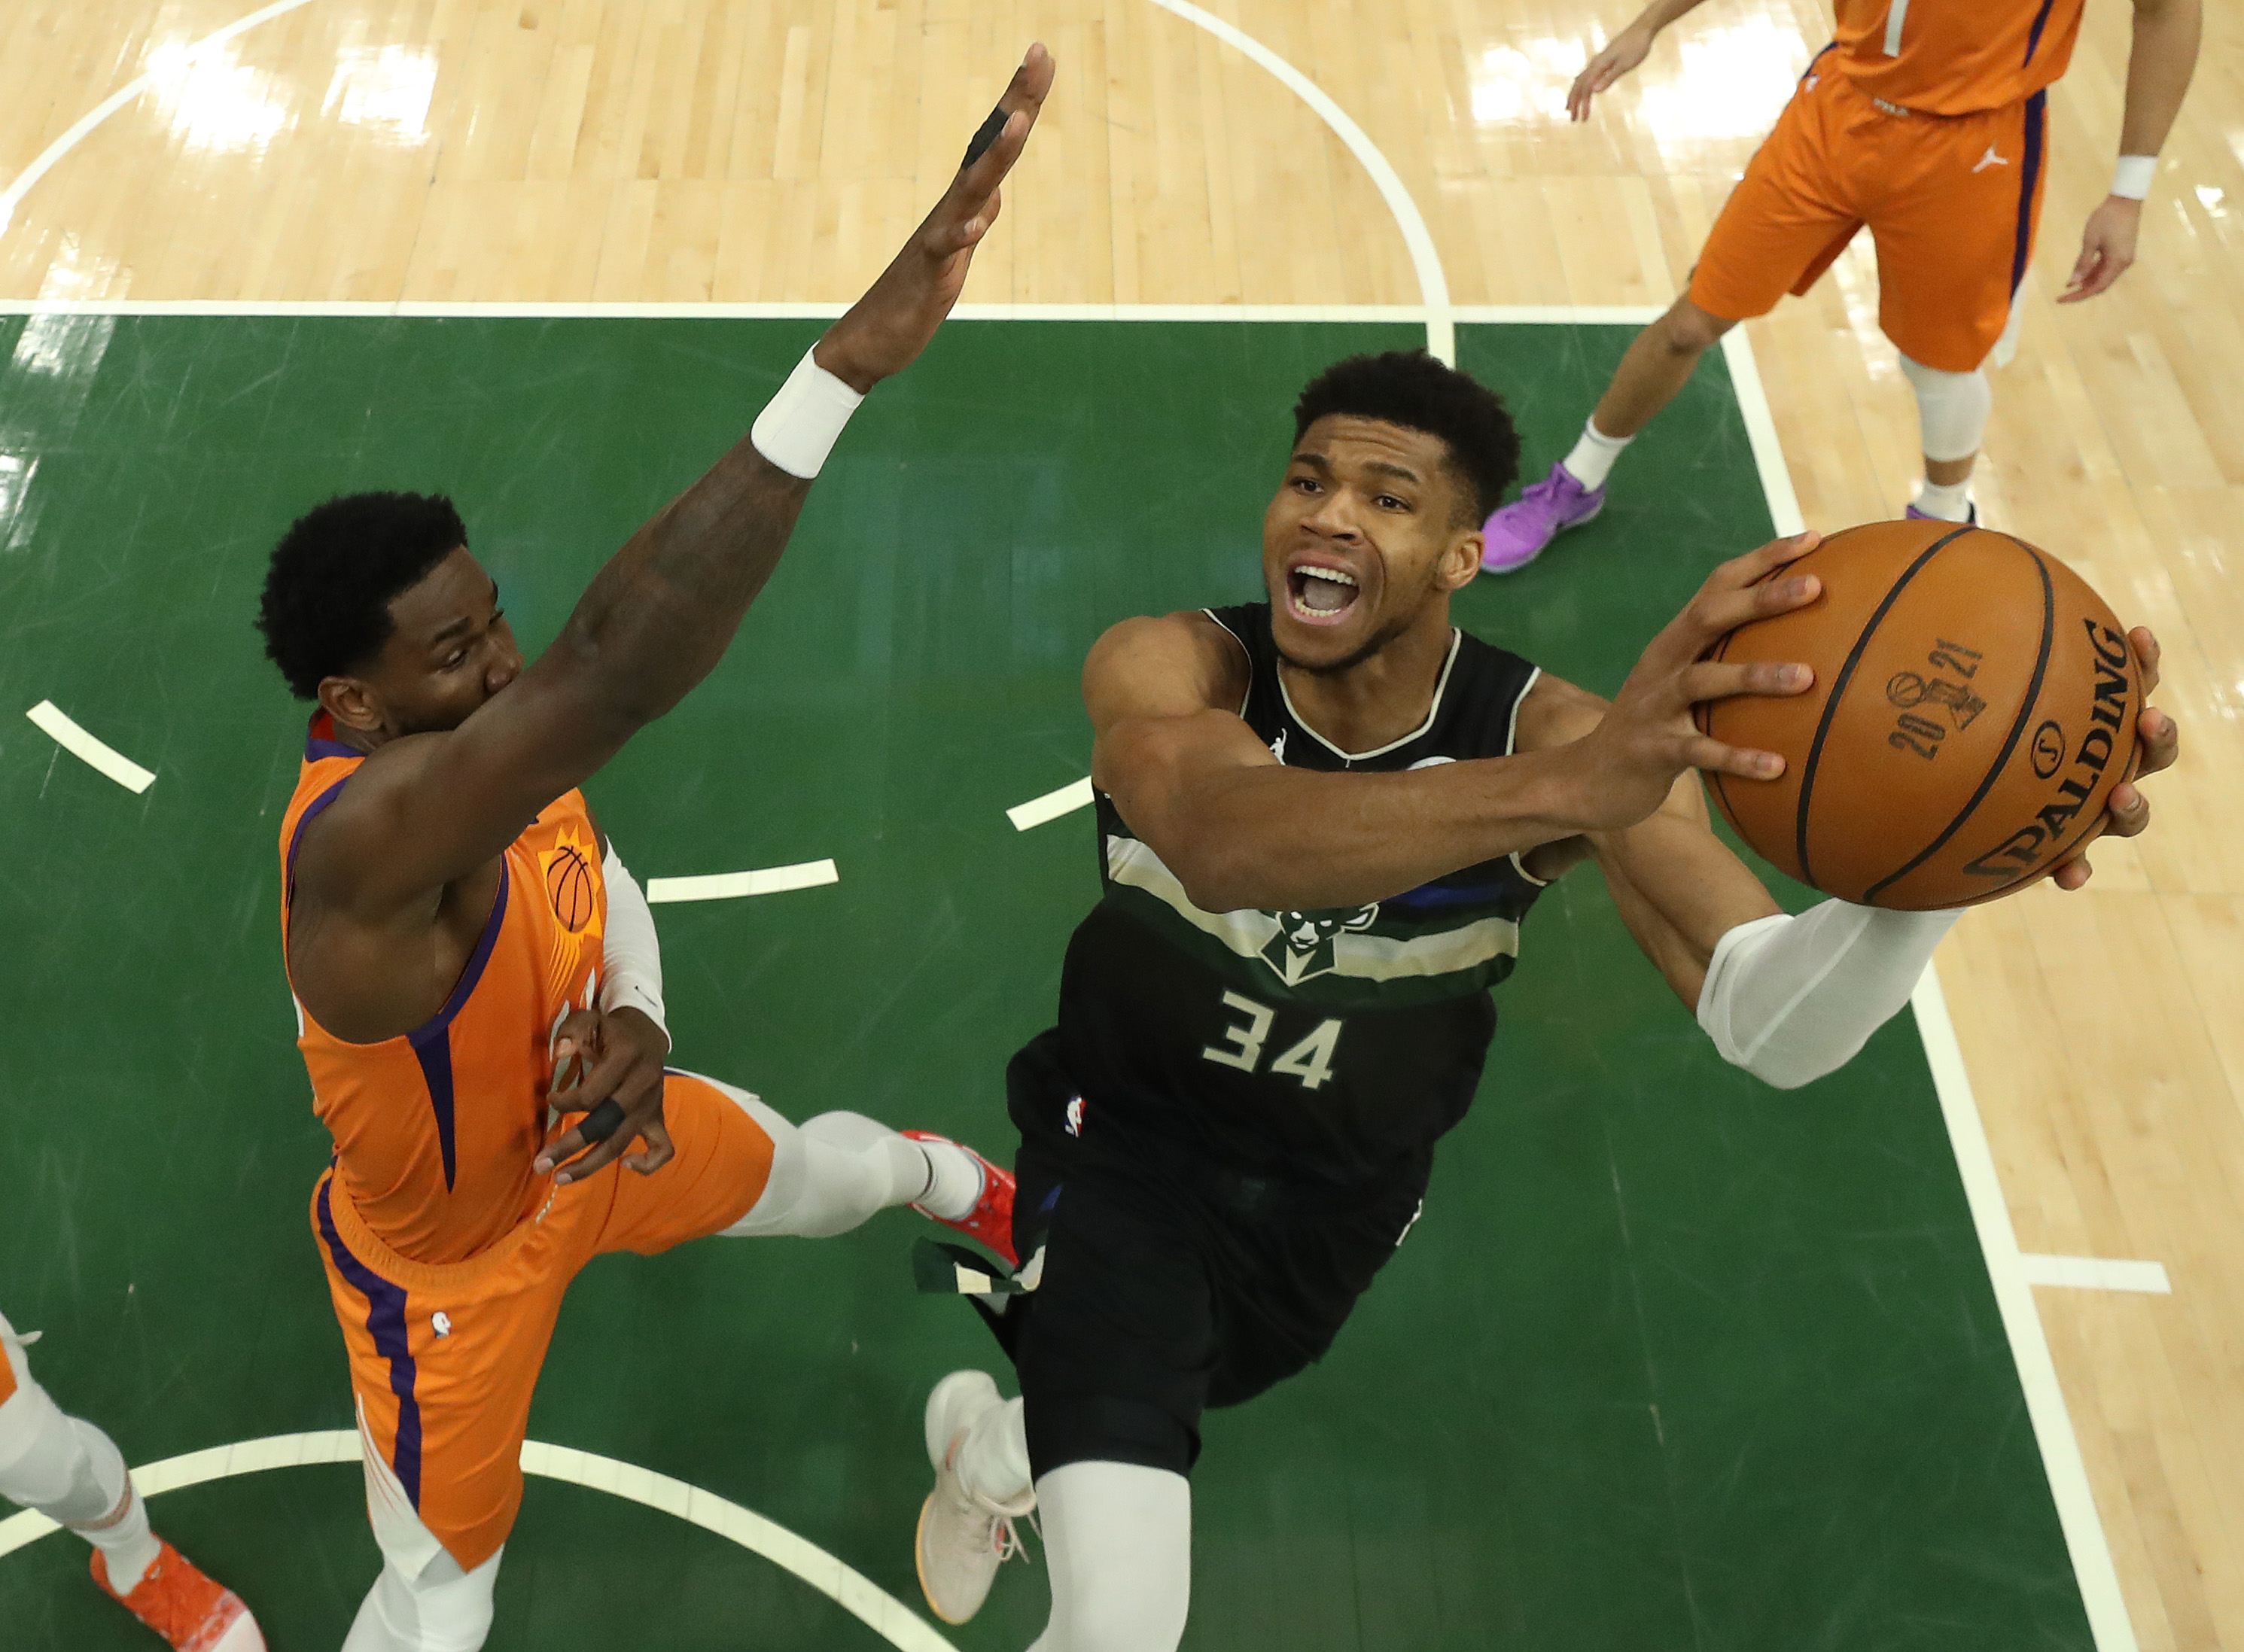 Giannis Antetokounmpo #34 of the Milwaukee Bucks goes up for a shot against Deandre Ayton #22 of the Phoenix Suns during the second half in Game Six of the NBA Finals at Fiserv Forum on July 20, 2021 in Milwaukee, Wisconsin.